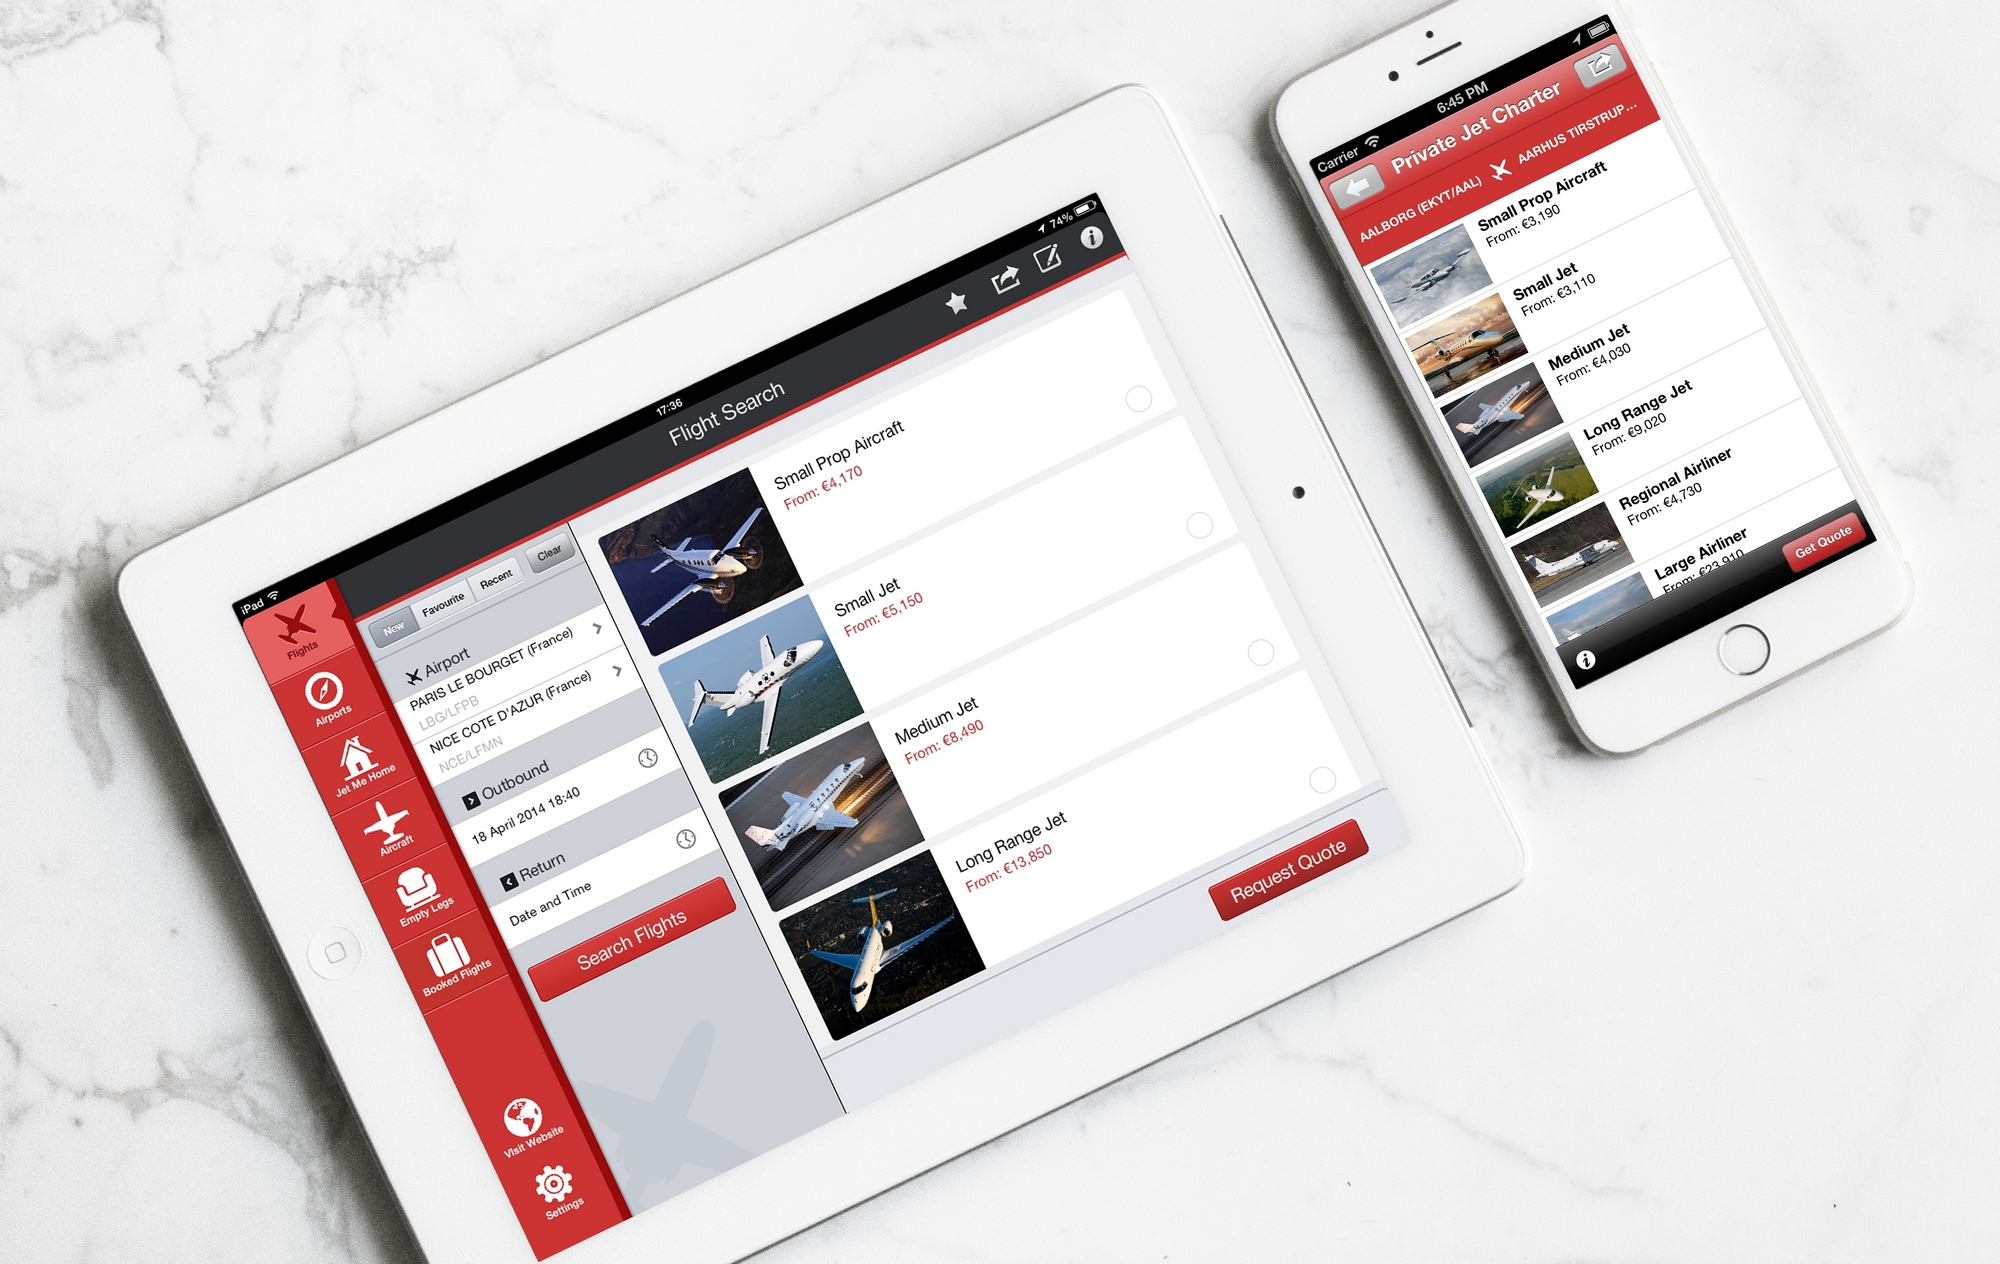 mobile and tablet PrivateFly app